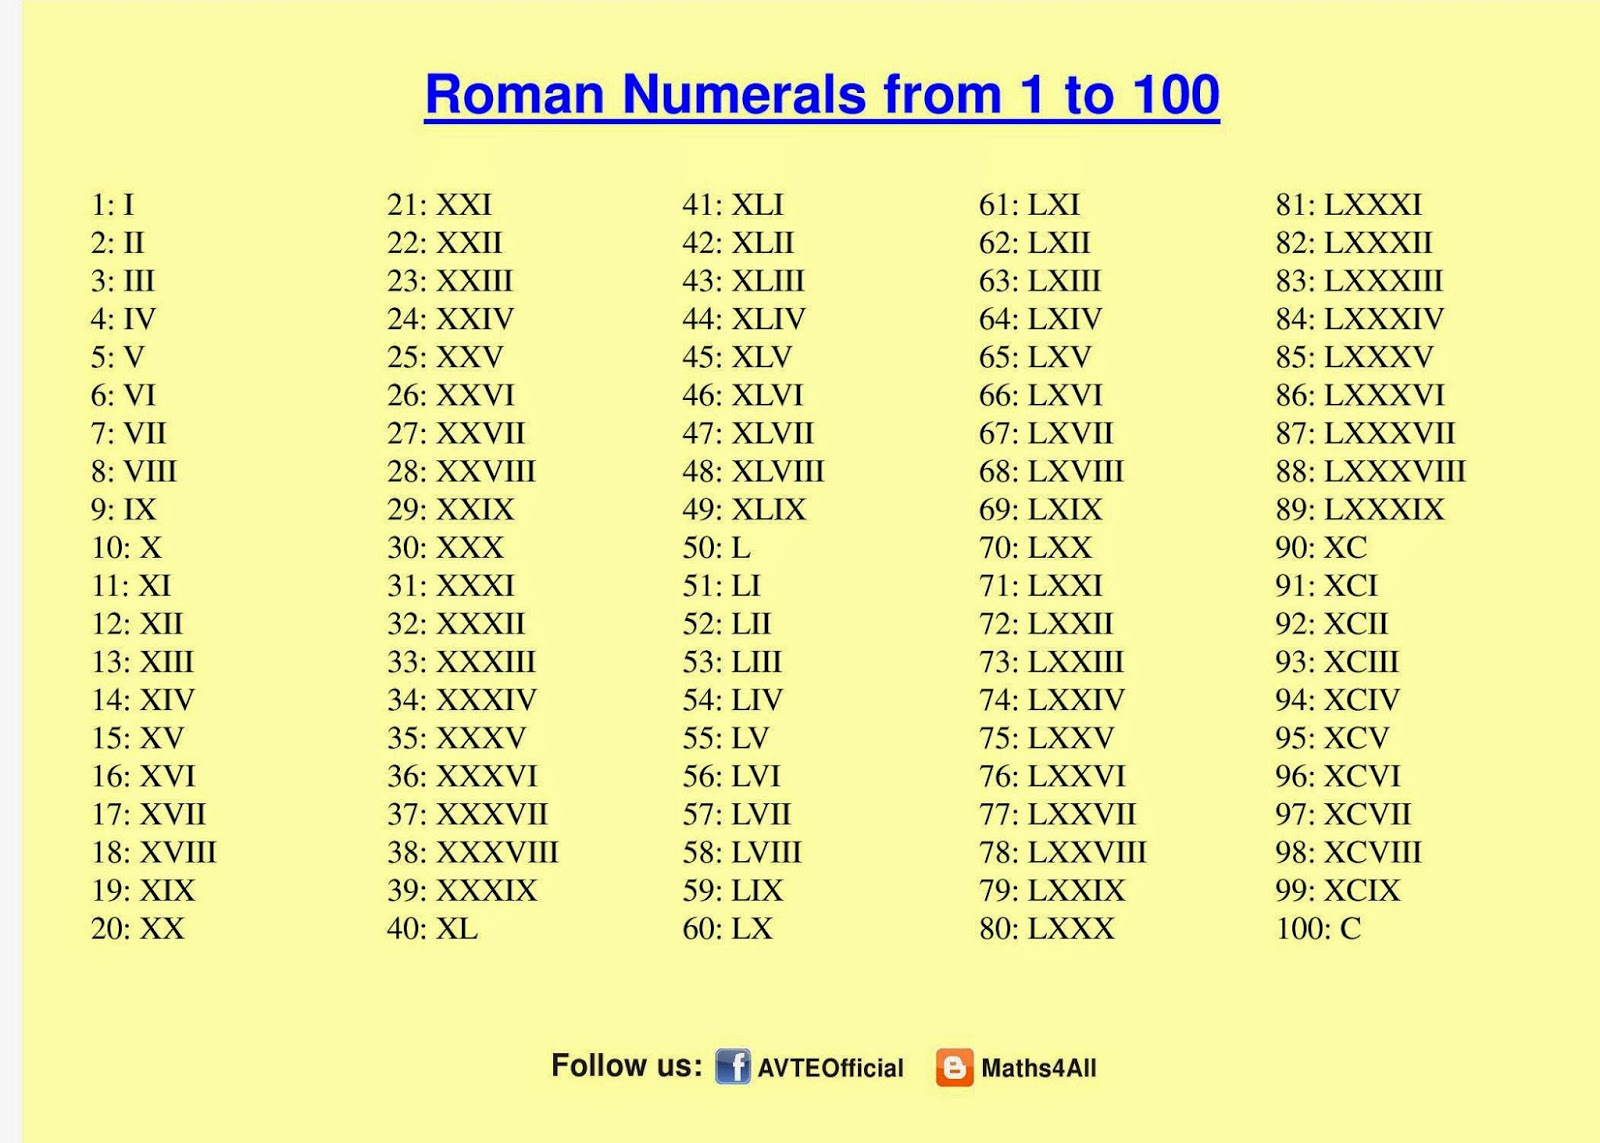 worksheet Roman Numerals 1-50 similiar 101 200 number roman numerals keywords 1 to 100